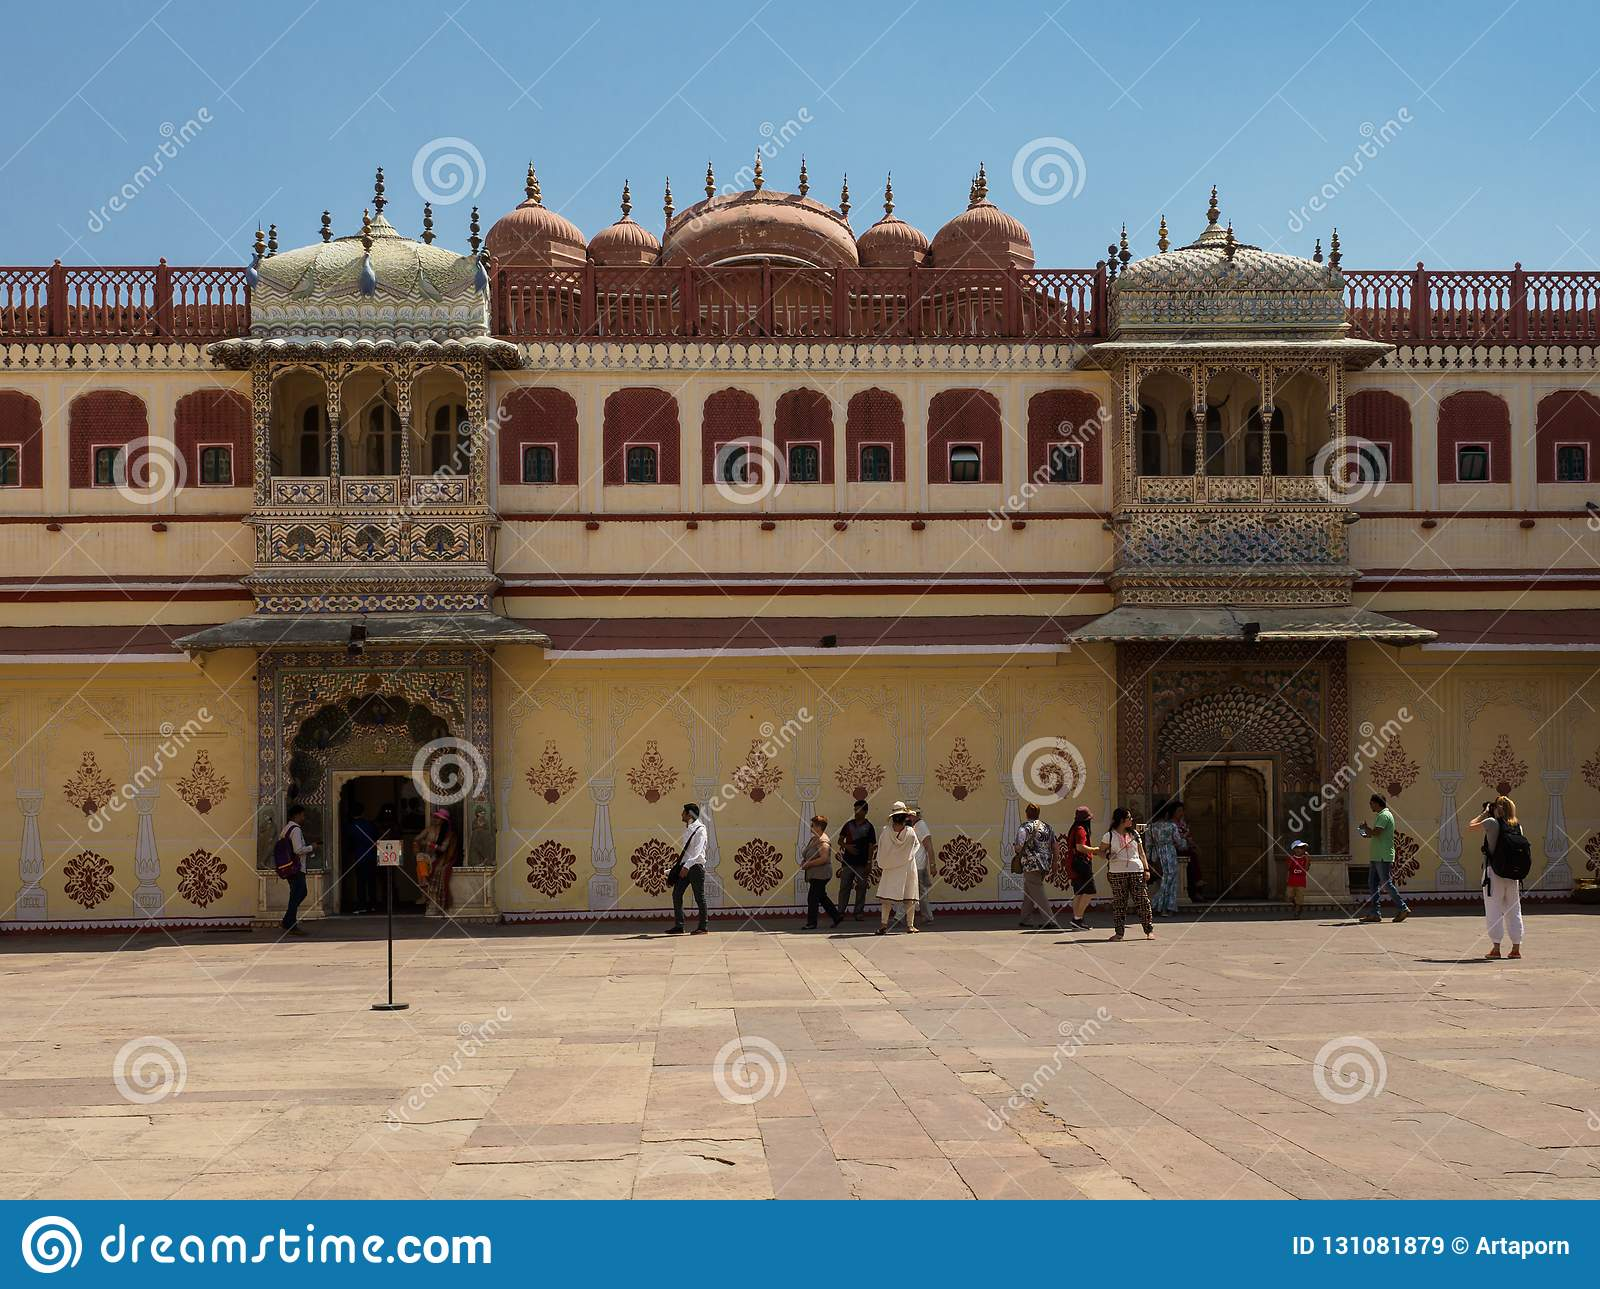 Tourists Gathering Visiting Inside City Palace Or Chandra Mahal